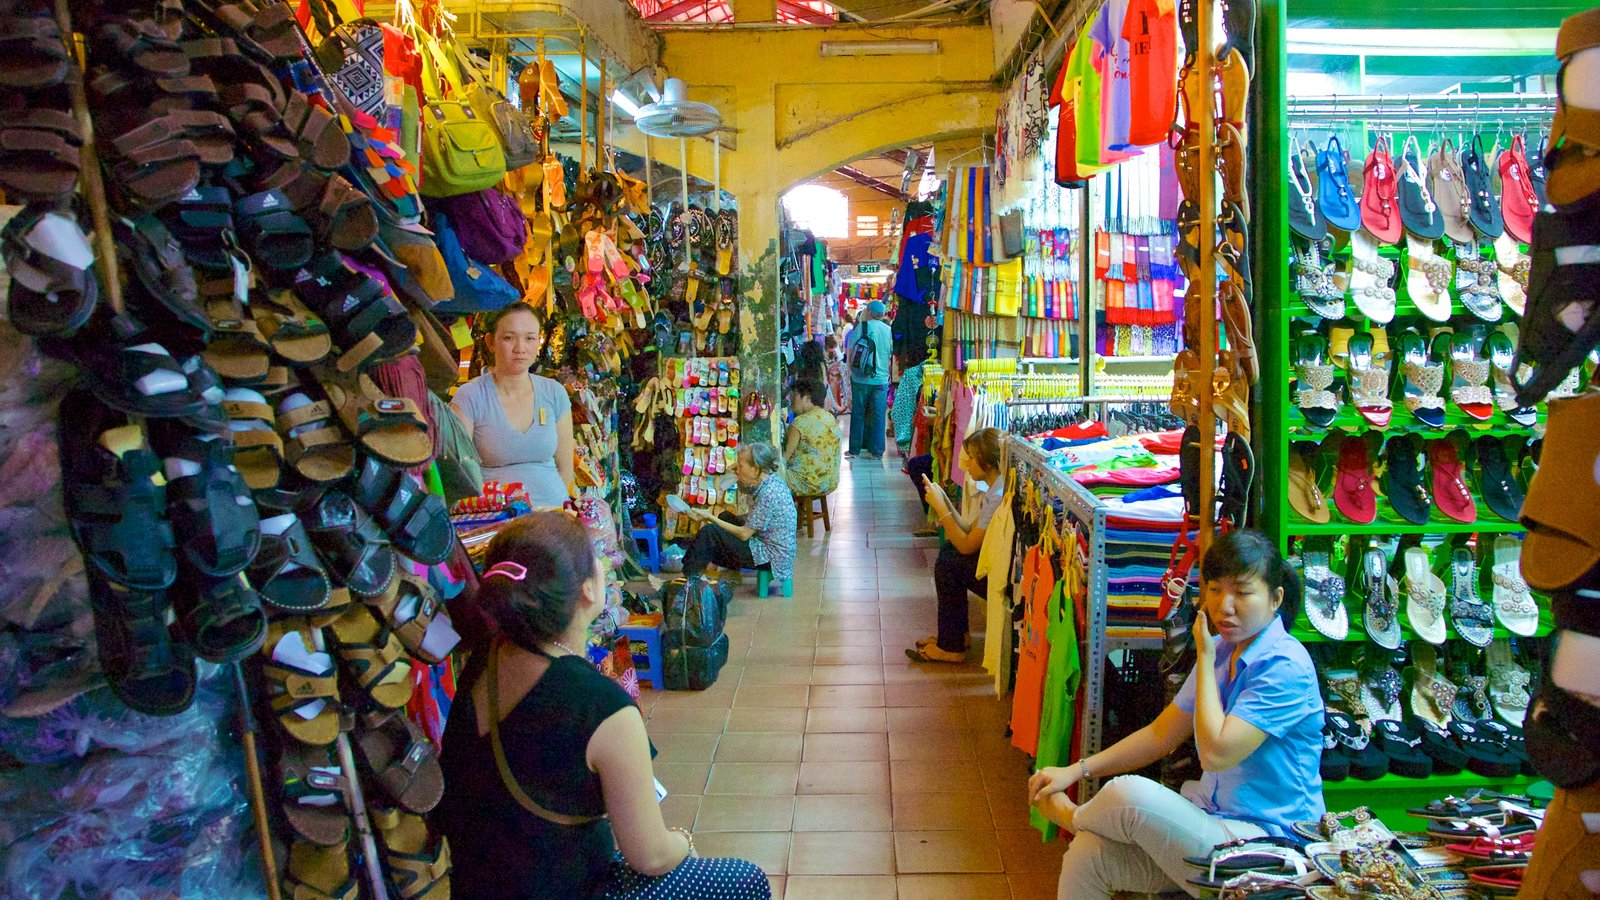 Ben Thanh Market which includes interior views and markets